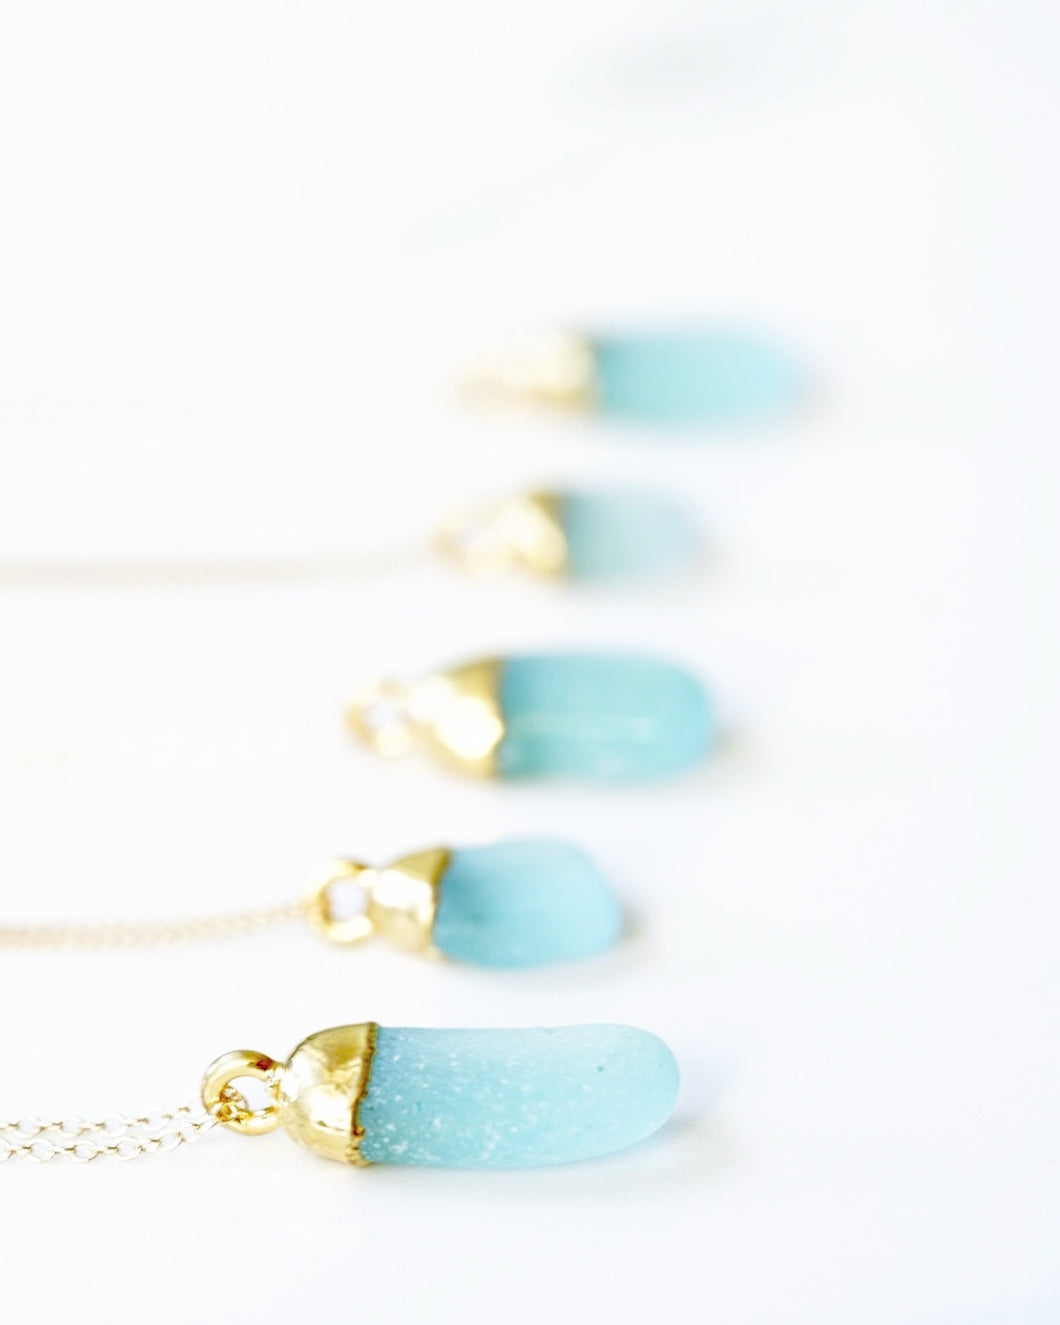 24k Gold-Dipped Sea Foam Green Sea Glass Necklace